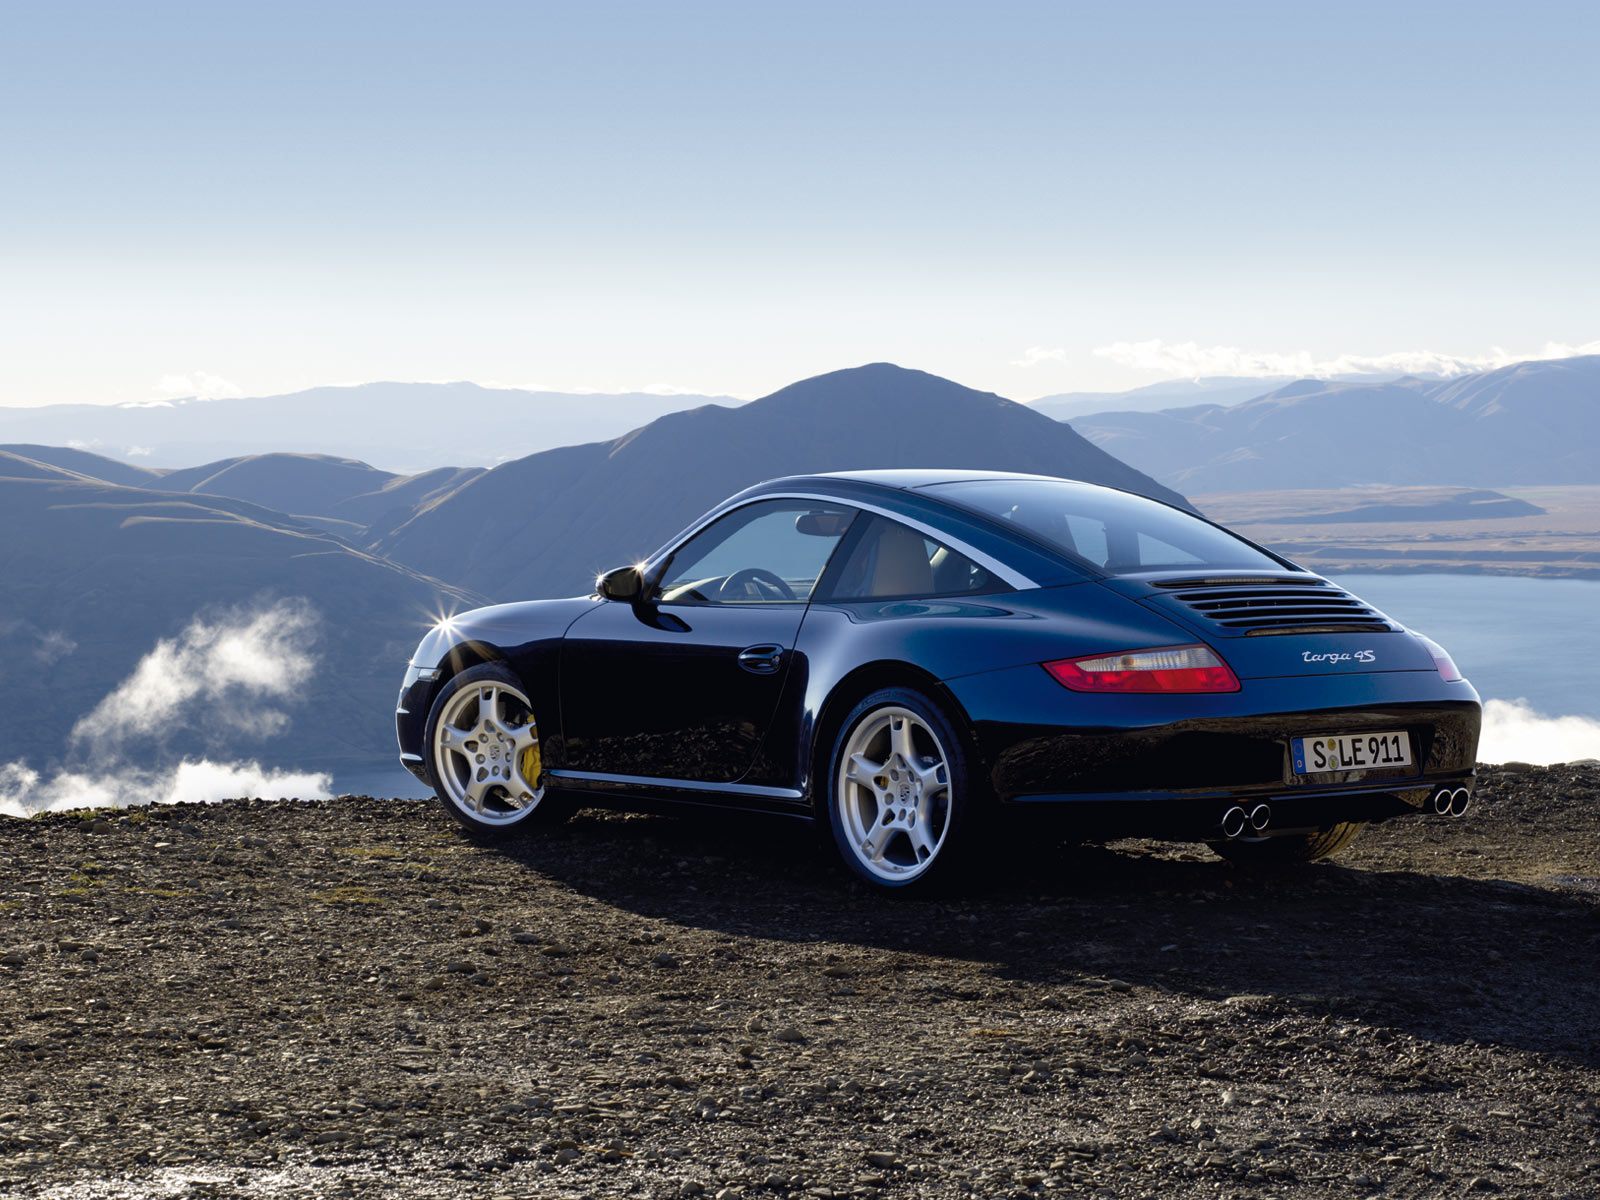 porsche 997 911 targa photos photogallery with 10 pics. Black Bedroom Furniture Sets. Home Design Ideas